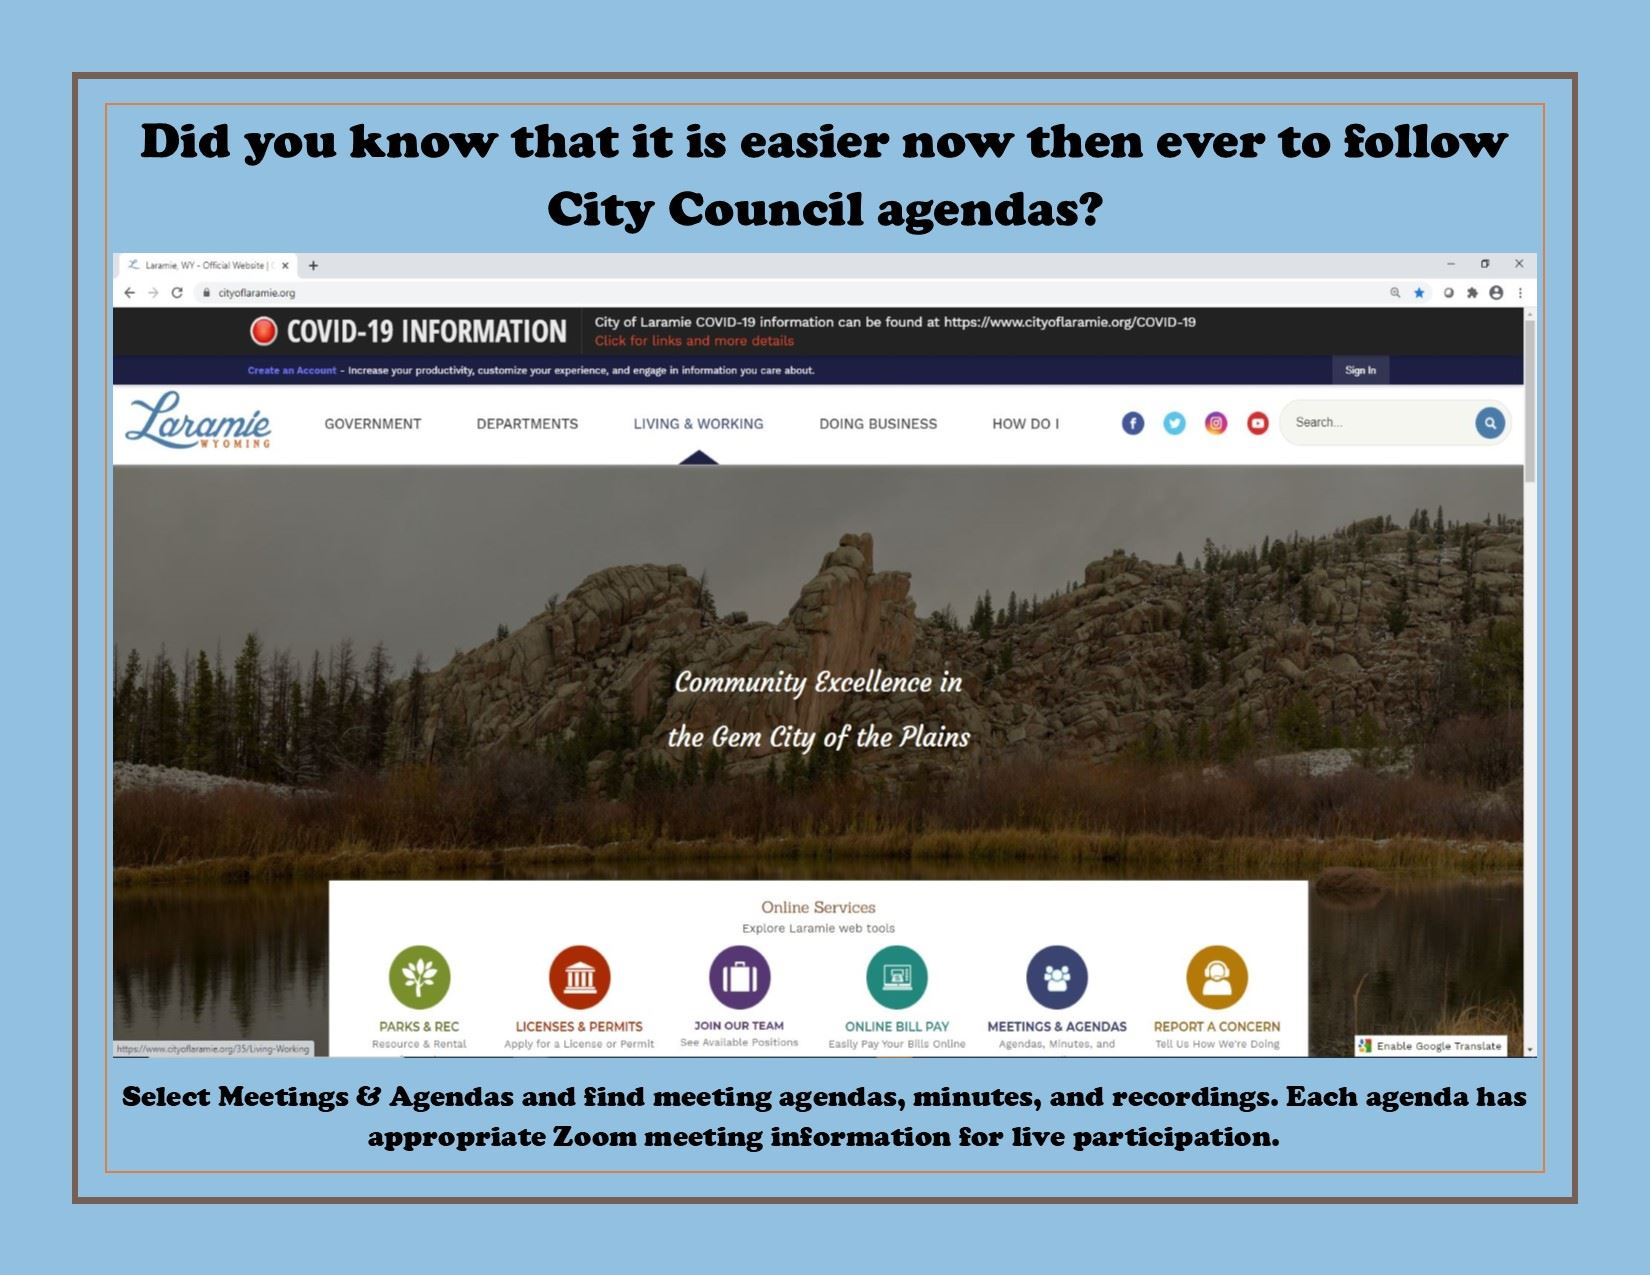 DYK Meetings_Agendas 9-30-20